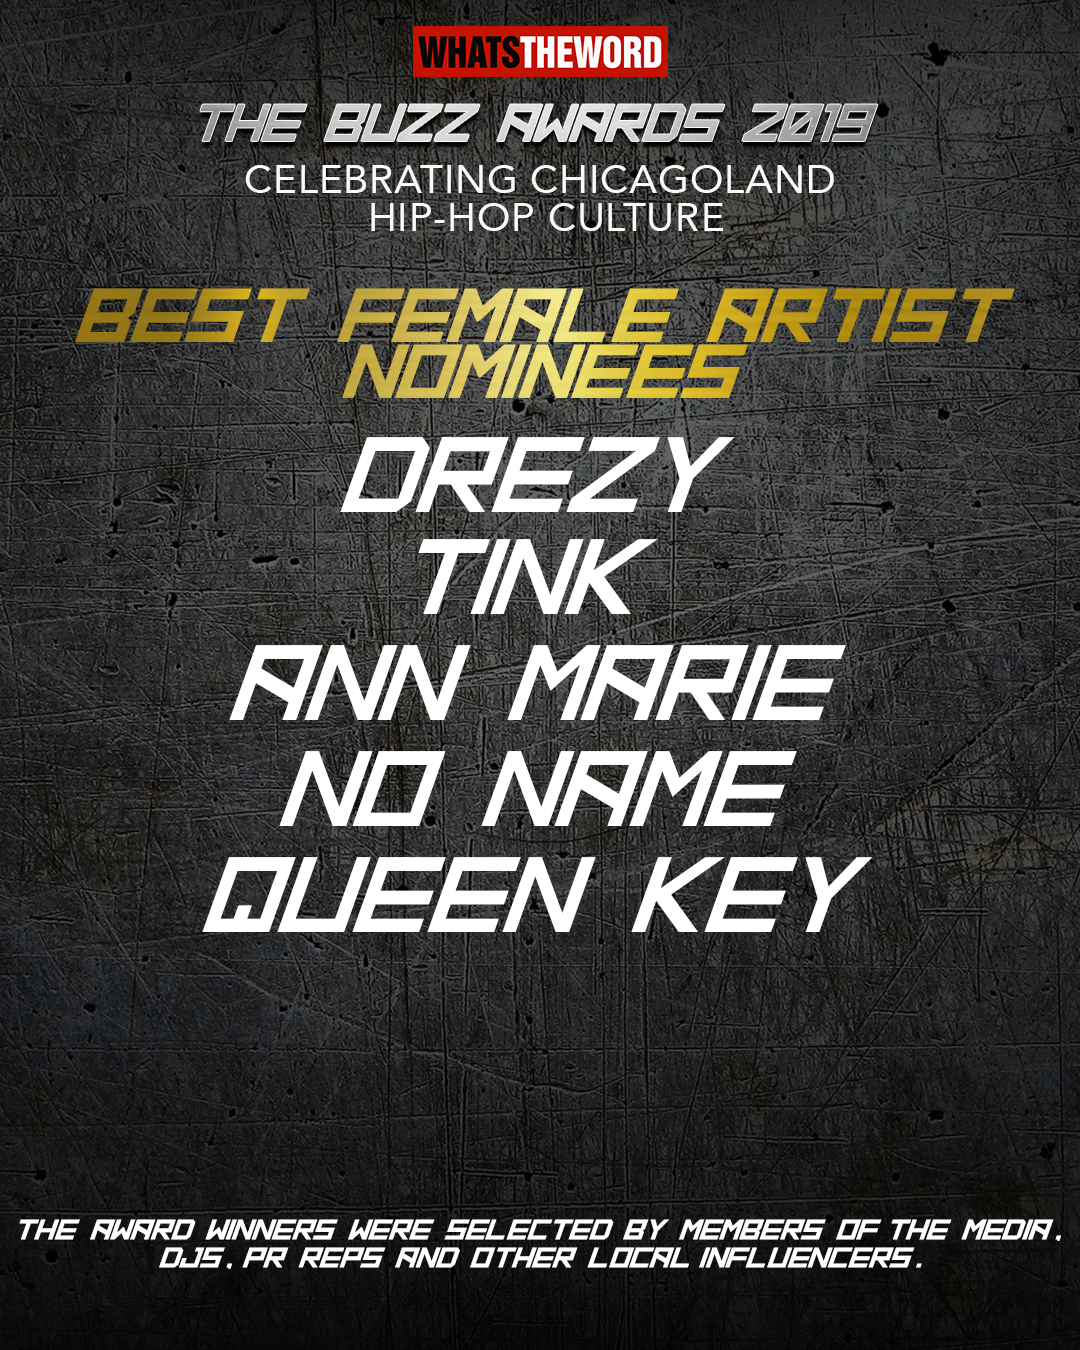 Best Female Artist_The Buzz Awards 2019_Nominees.jpg